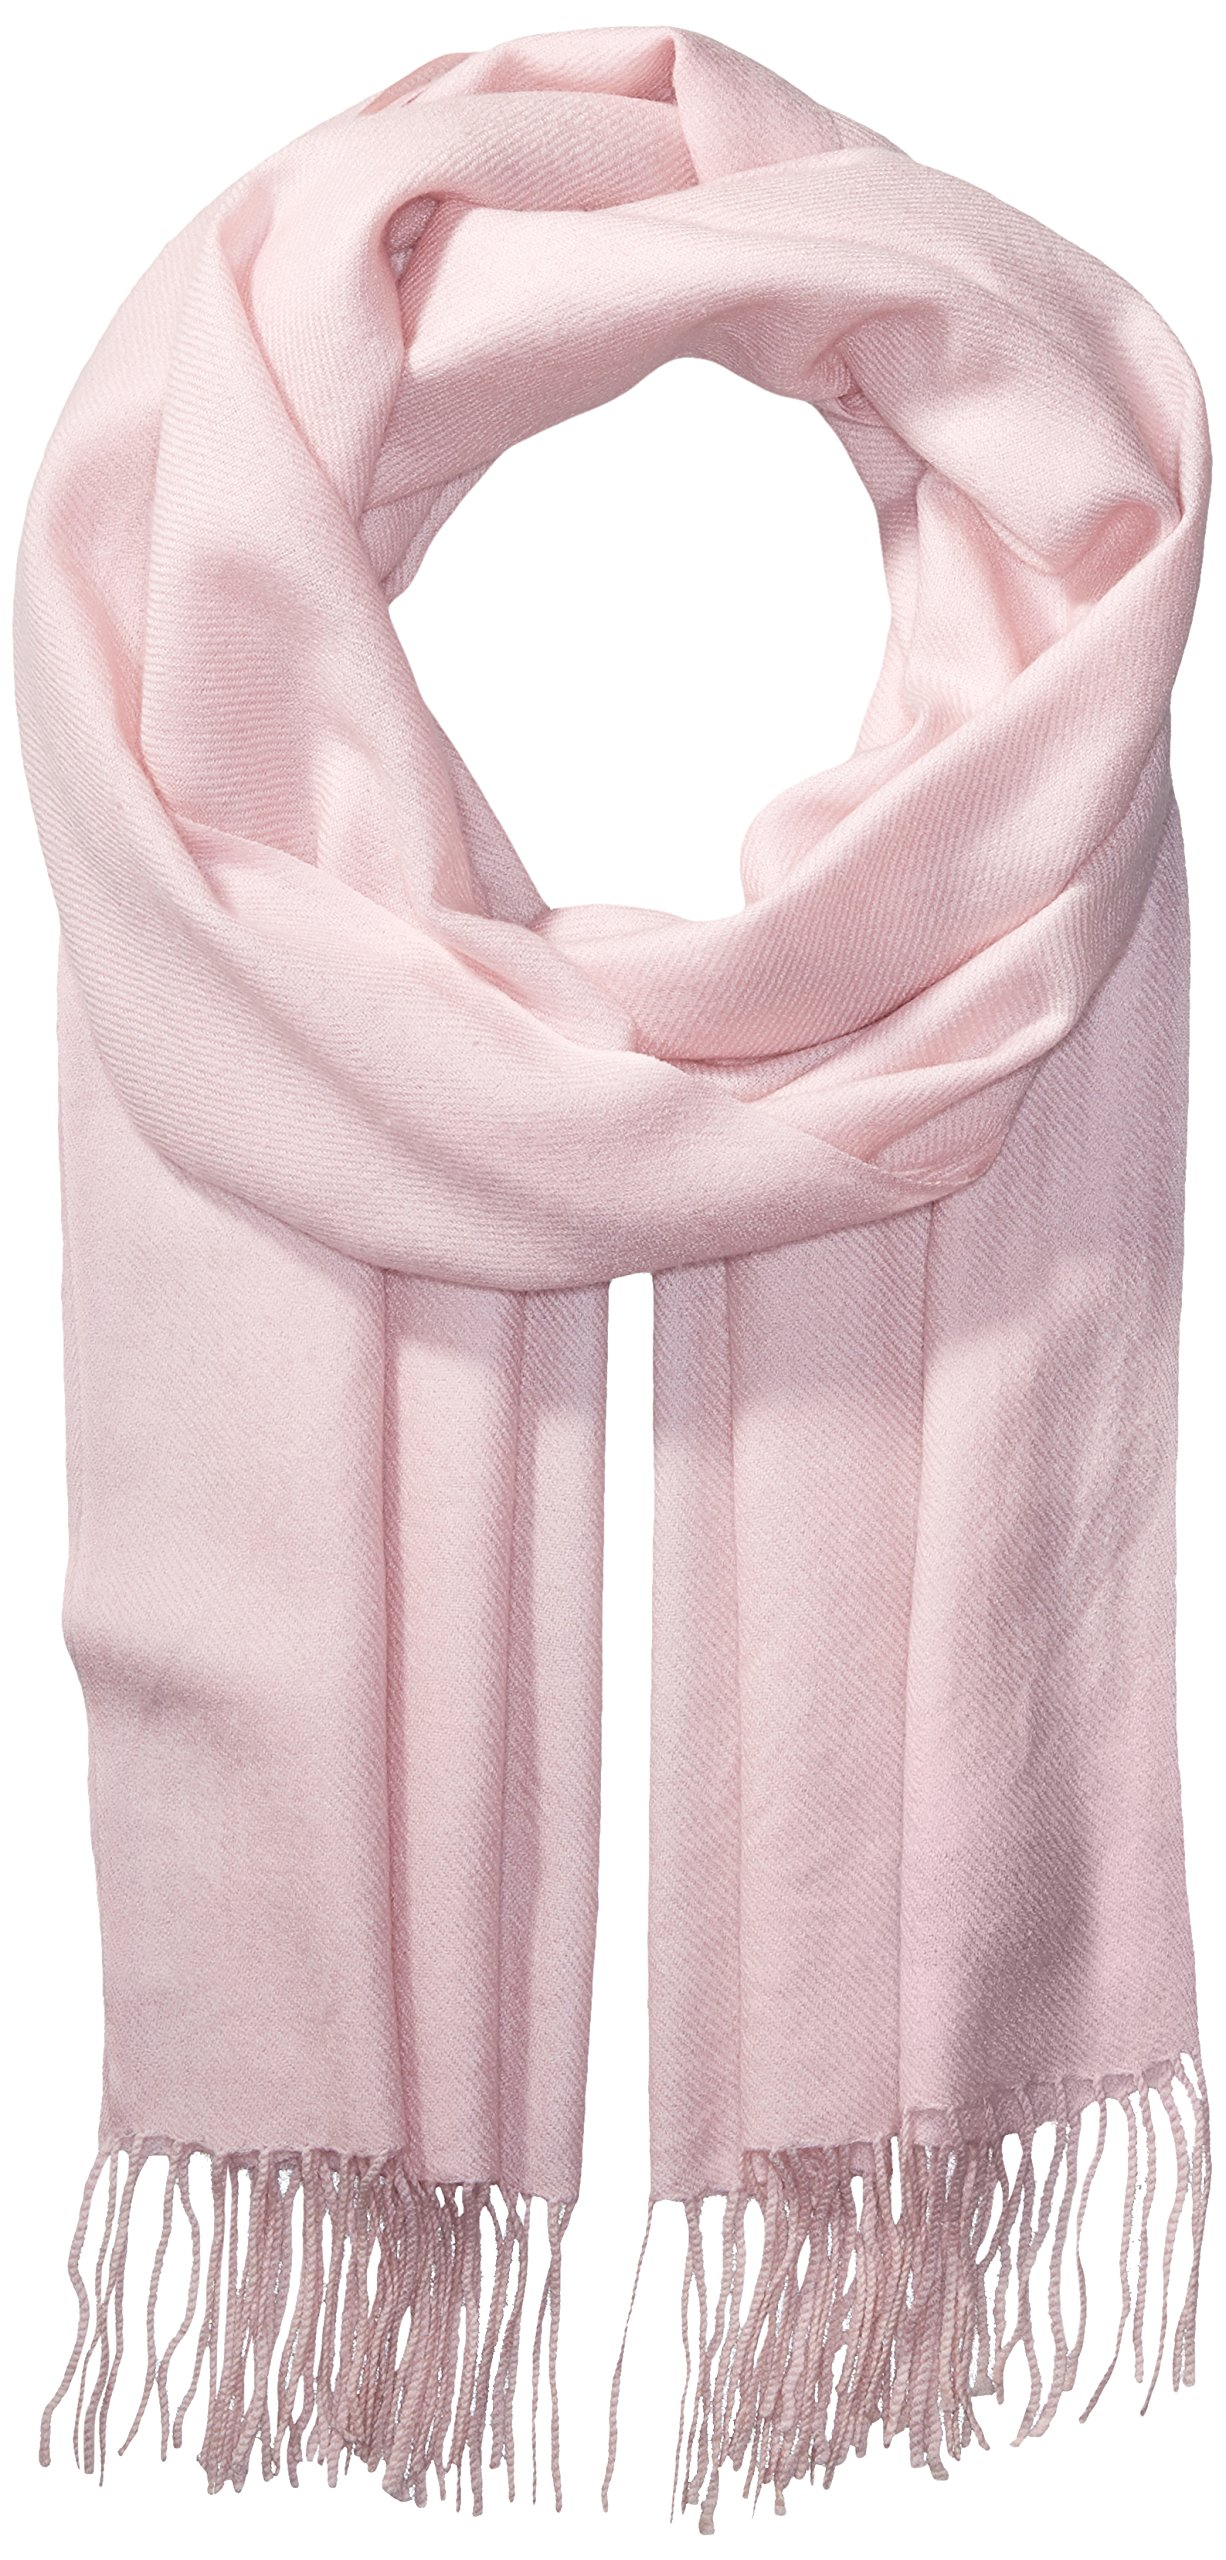 La Fiorentina Women's Soft Twill Cashmere Scarf, Light Pink, One Size